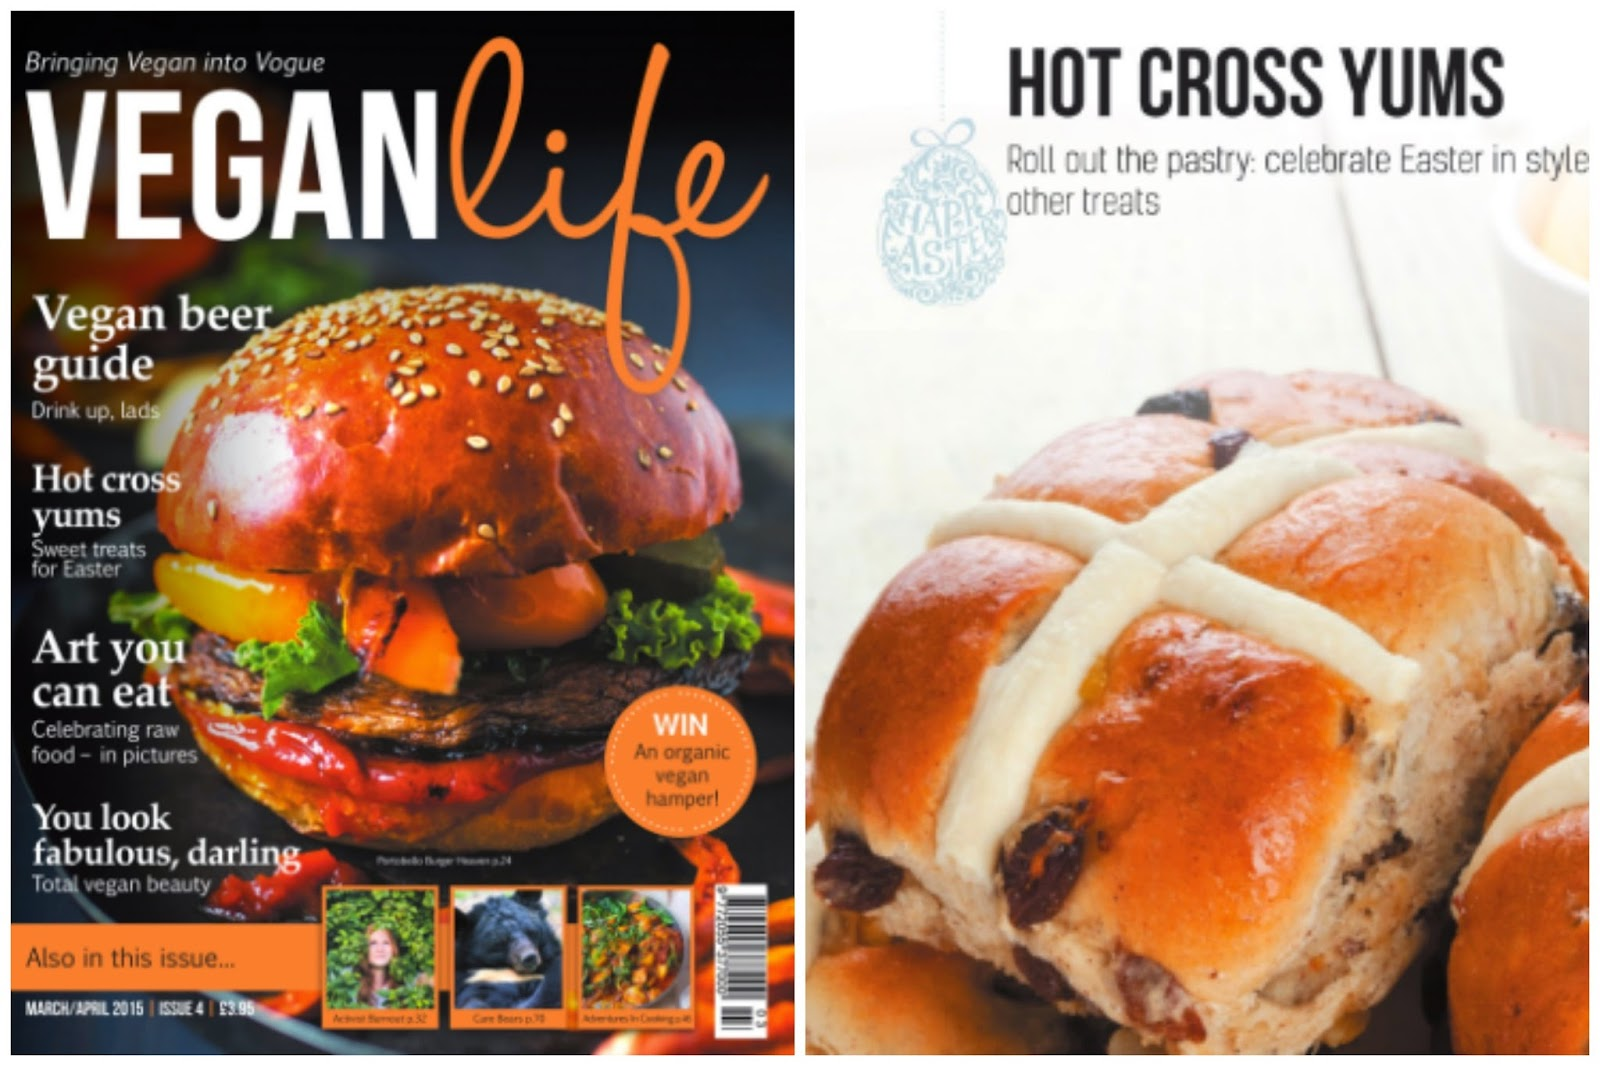 Vegan Sticky Hot Cross Buns Recipe, from Vegan Life Magazine Issue 4.  secondhandsusie.blogspot.co.uk